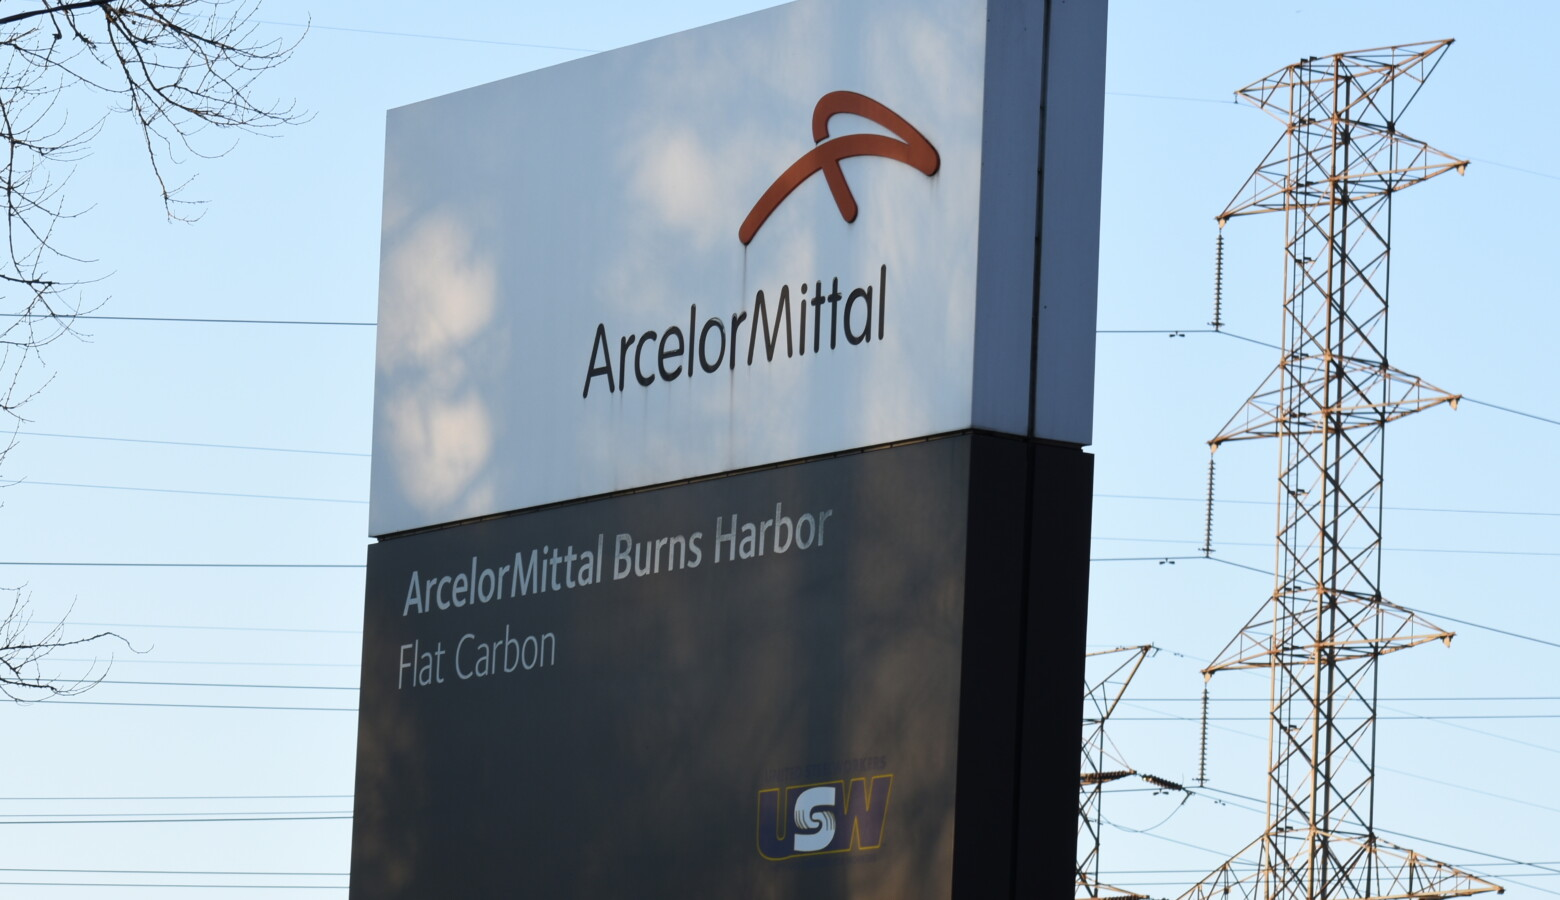 It's been one year since a ArcelorMittal's spill into a Lake Michigan waterway – which killed about 3,000 fish and forced beaches to close temporarily. (Justin Hicks/IPB News)